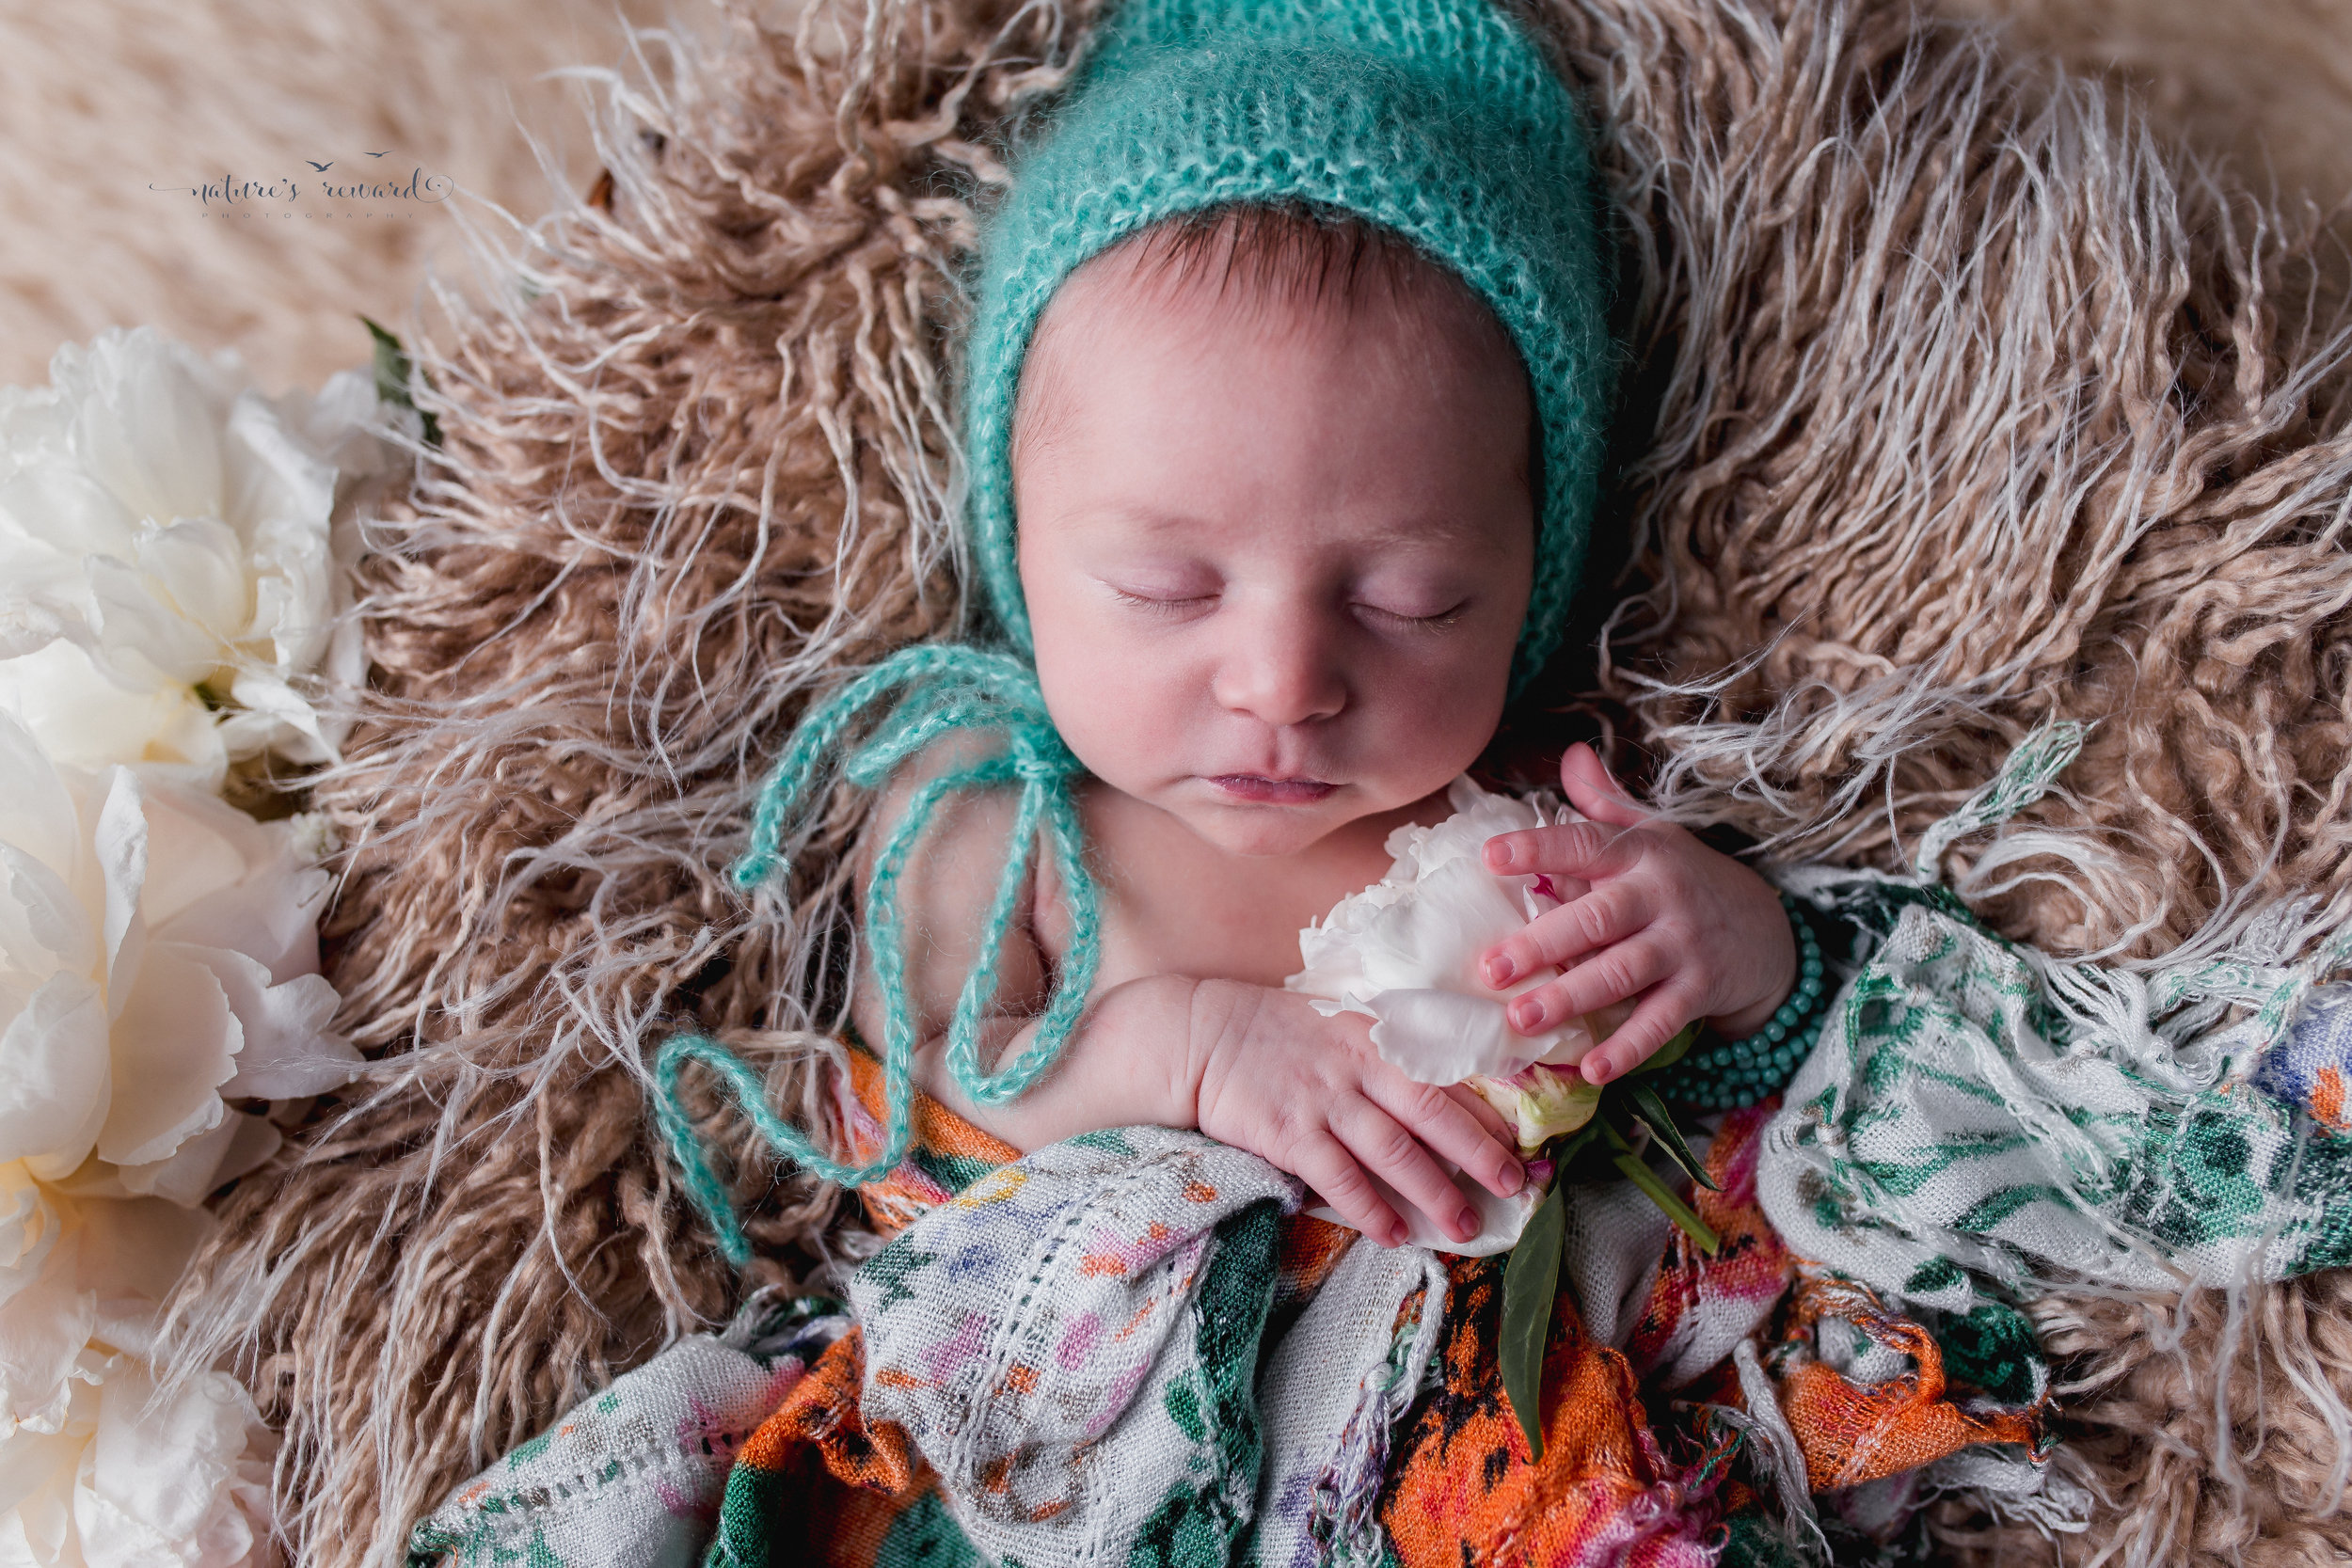 Newborn baby portrait in whites and soft teal, laying on a bed of fur holding her peony.A Portrait By Nature's Reward Photography, a San Bernardino Family, Child, and Newborn Baby Photographer.